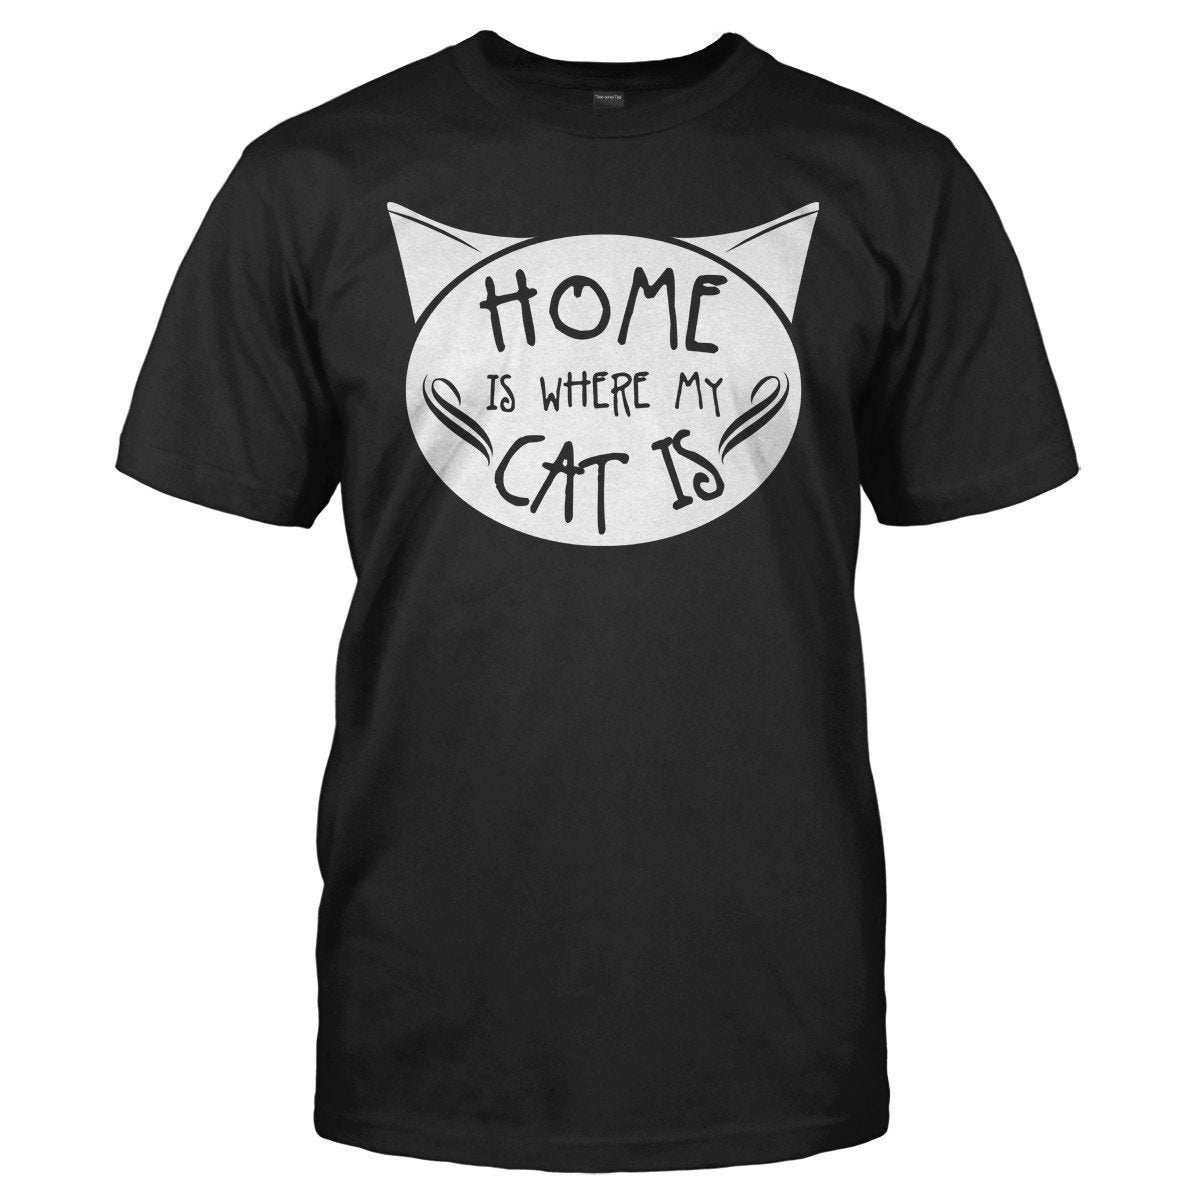 Home is Where My Cat Is - T Shirt